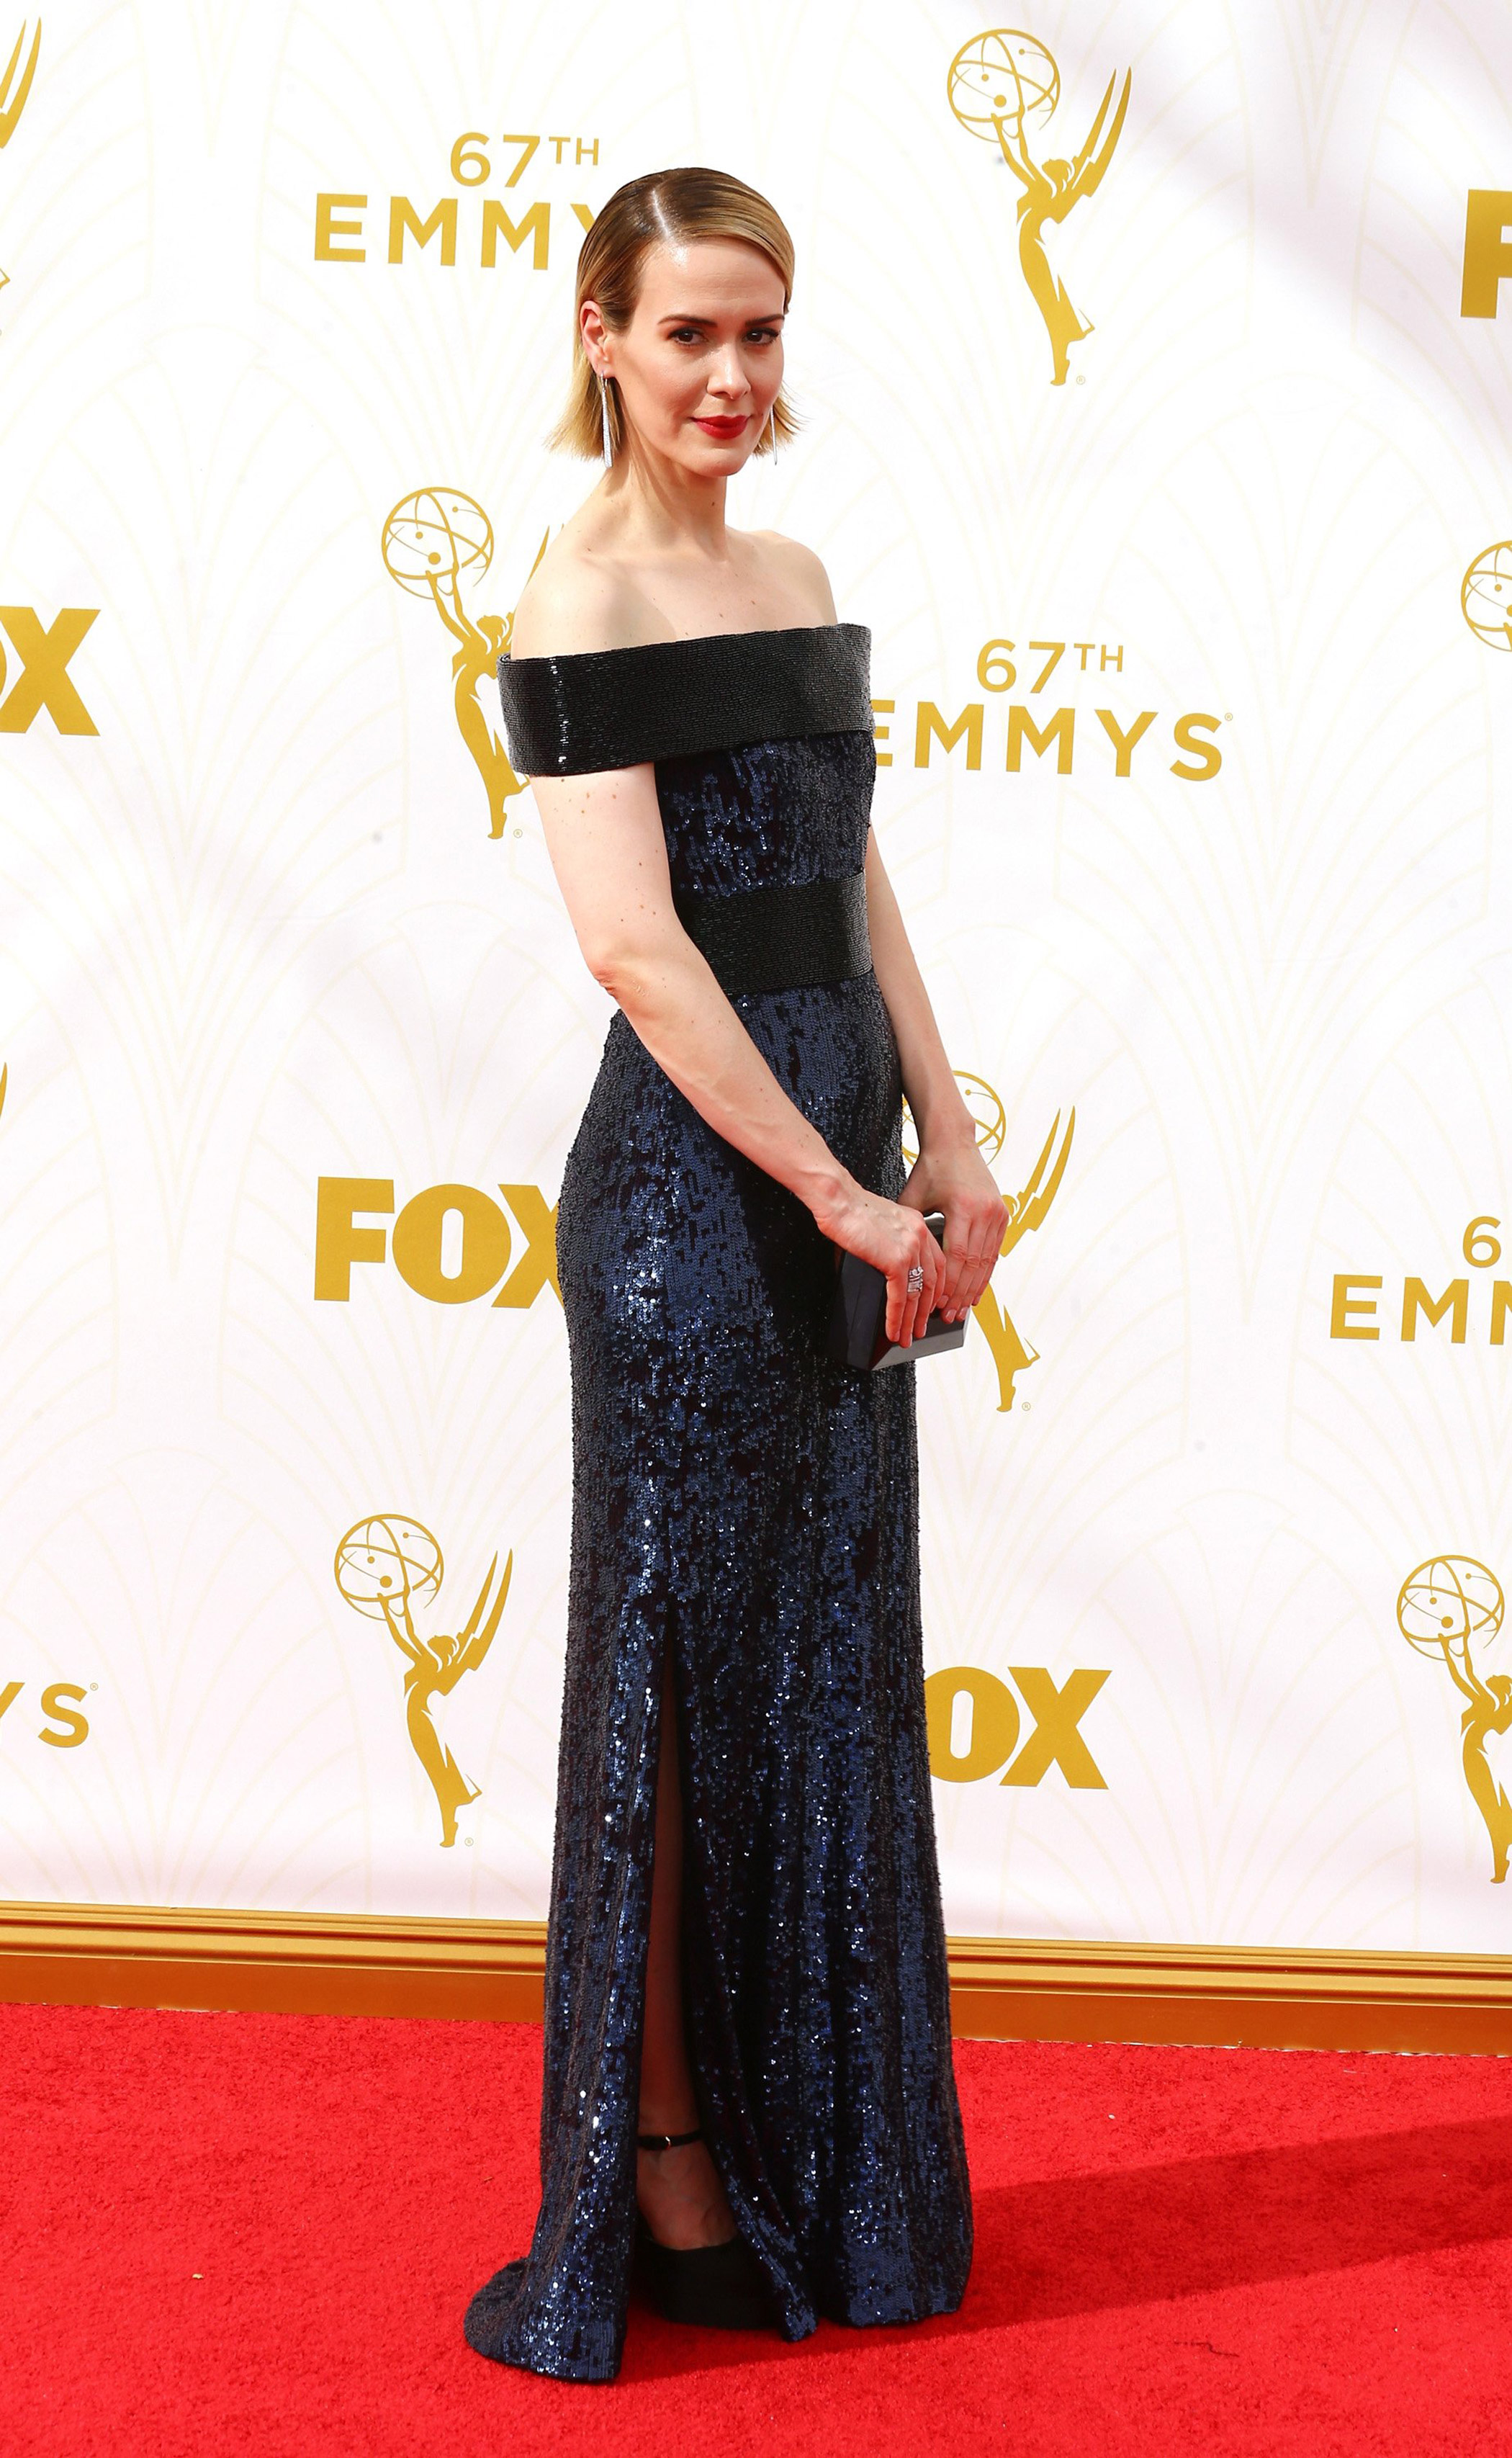 Sarah Paulson at the 67th Emmy Award on Sept. 20, 2015 in Los Angeles.